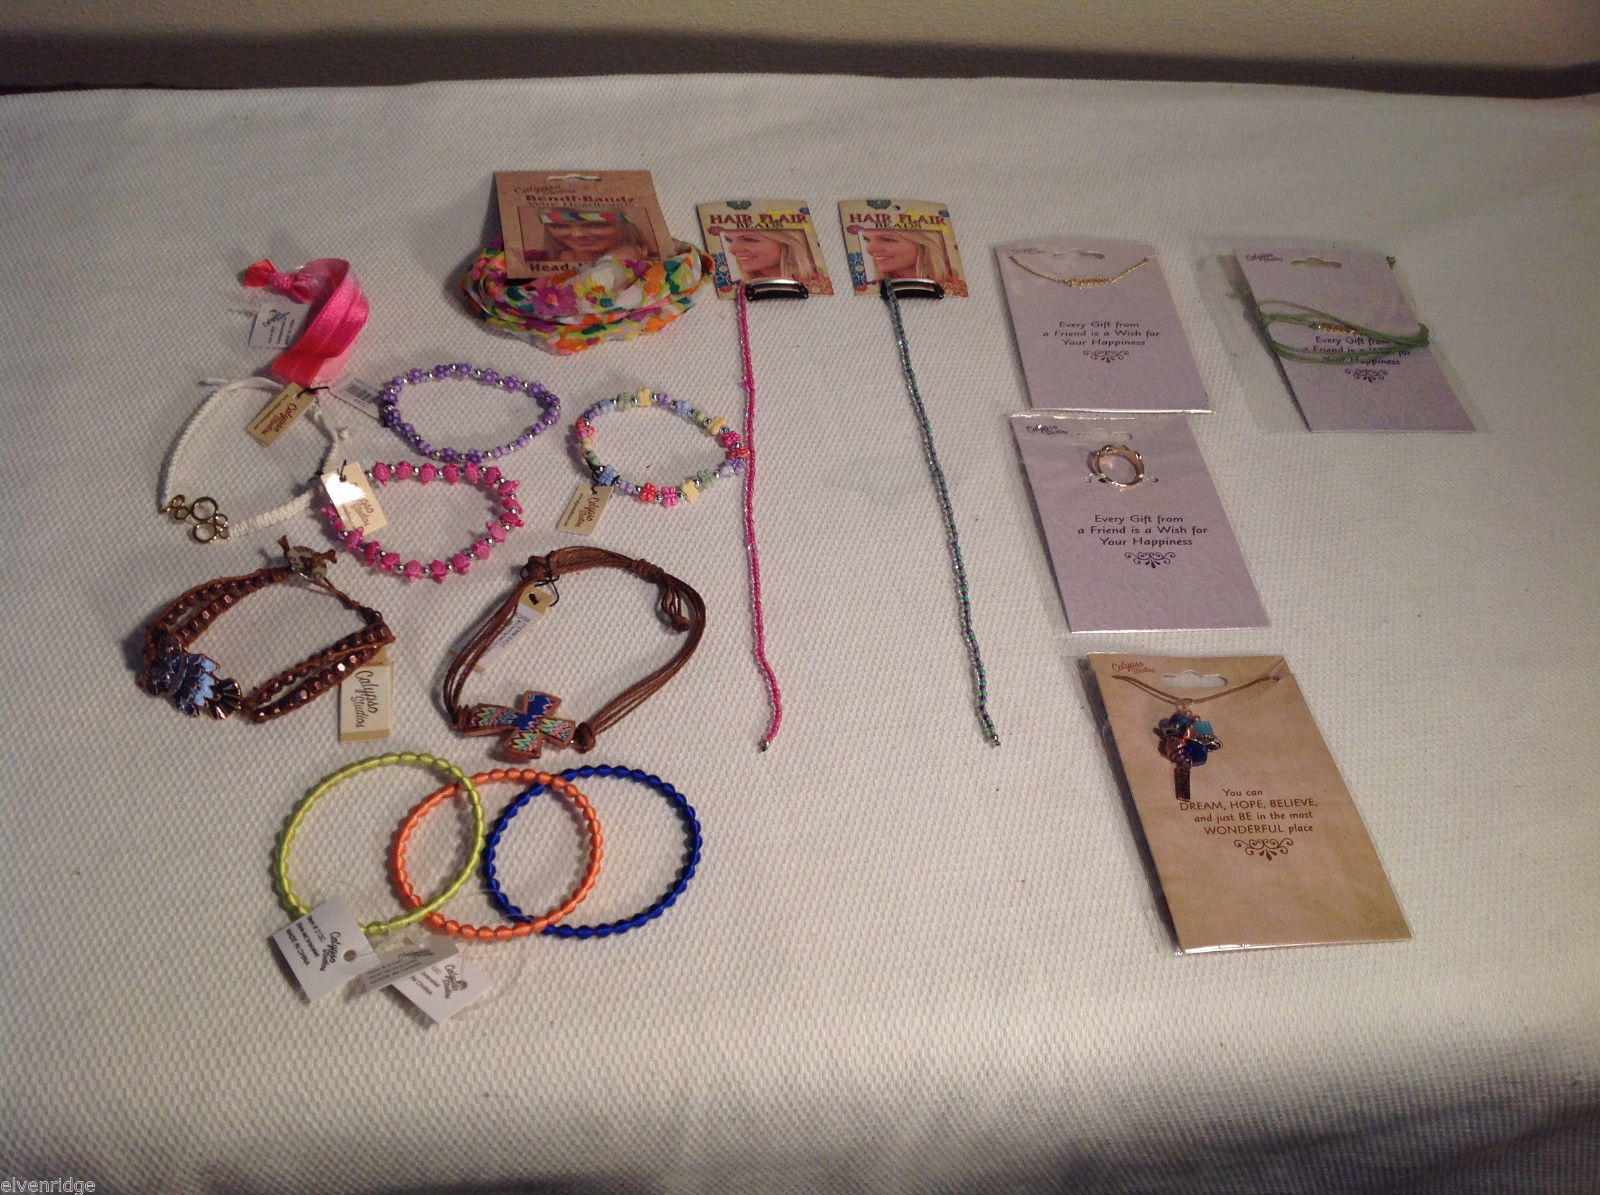 17 pc Calypso Studios Lot - 9 bracelets, 1 hairtie, 1 headband, 2 bead chains ++